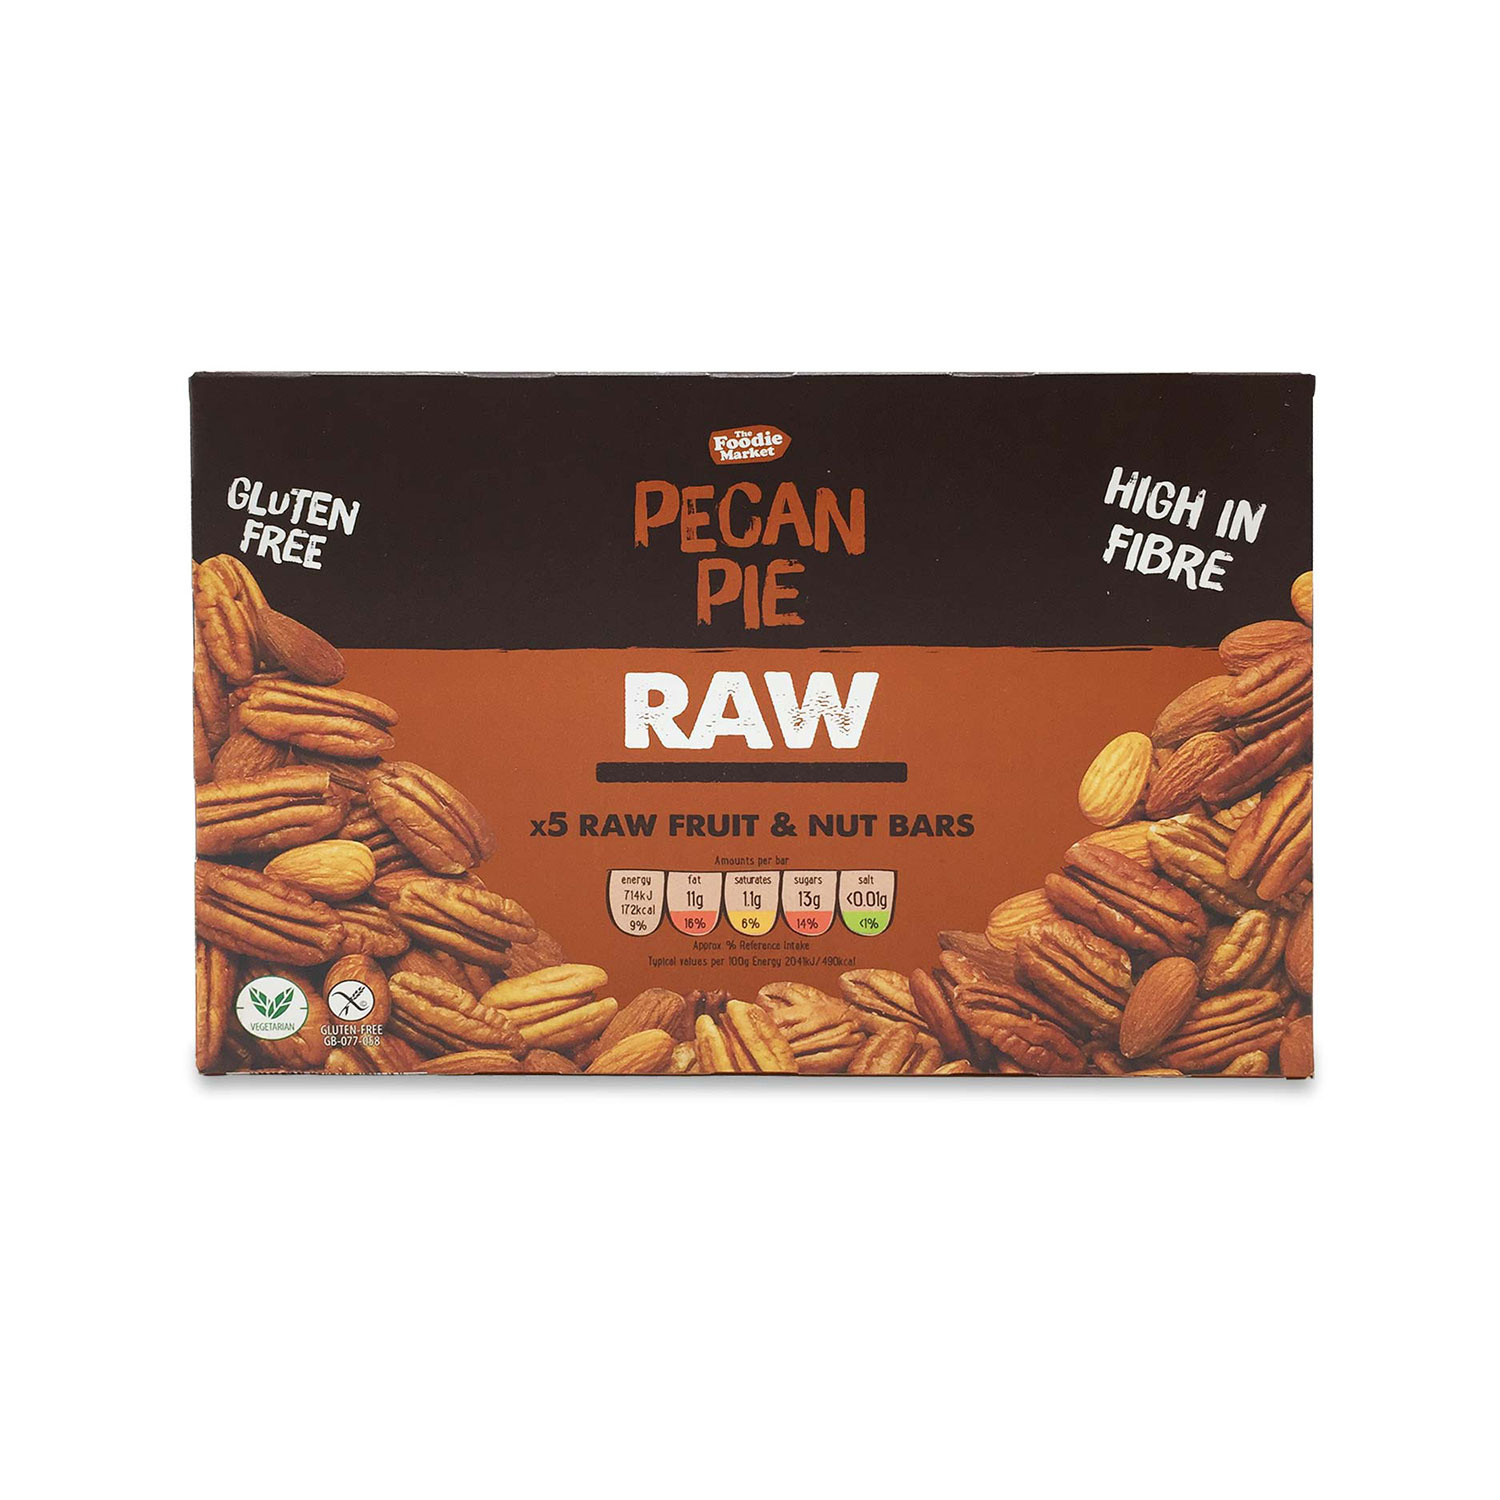 Pecan Pie Raw Fruit & Nut Bars